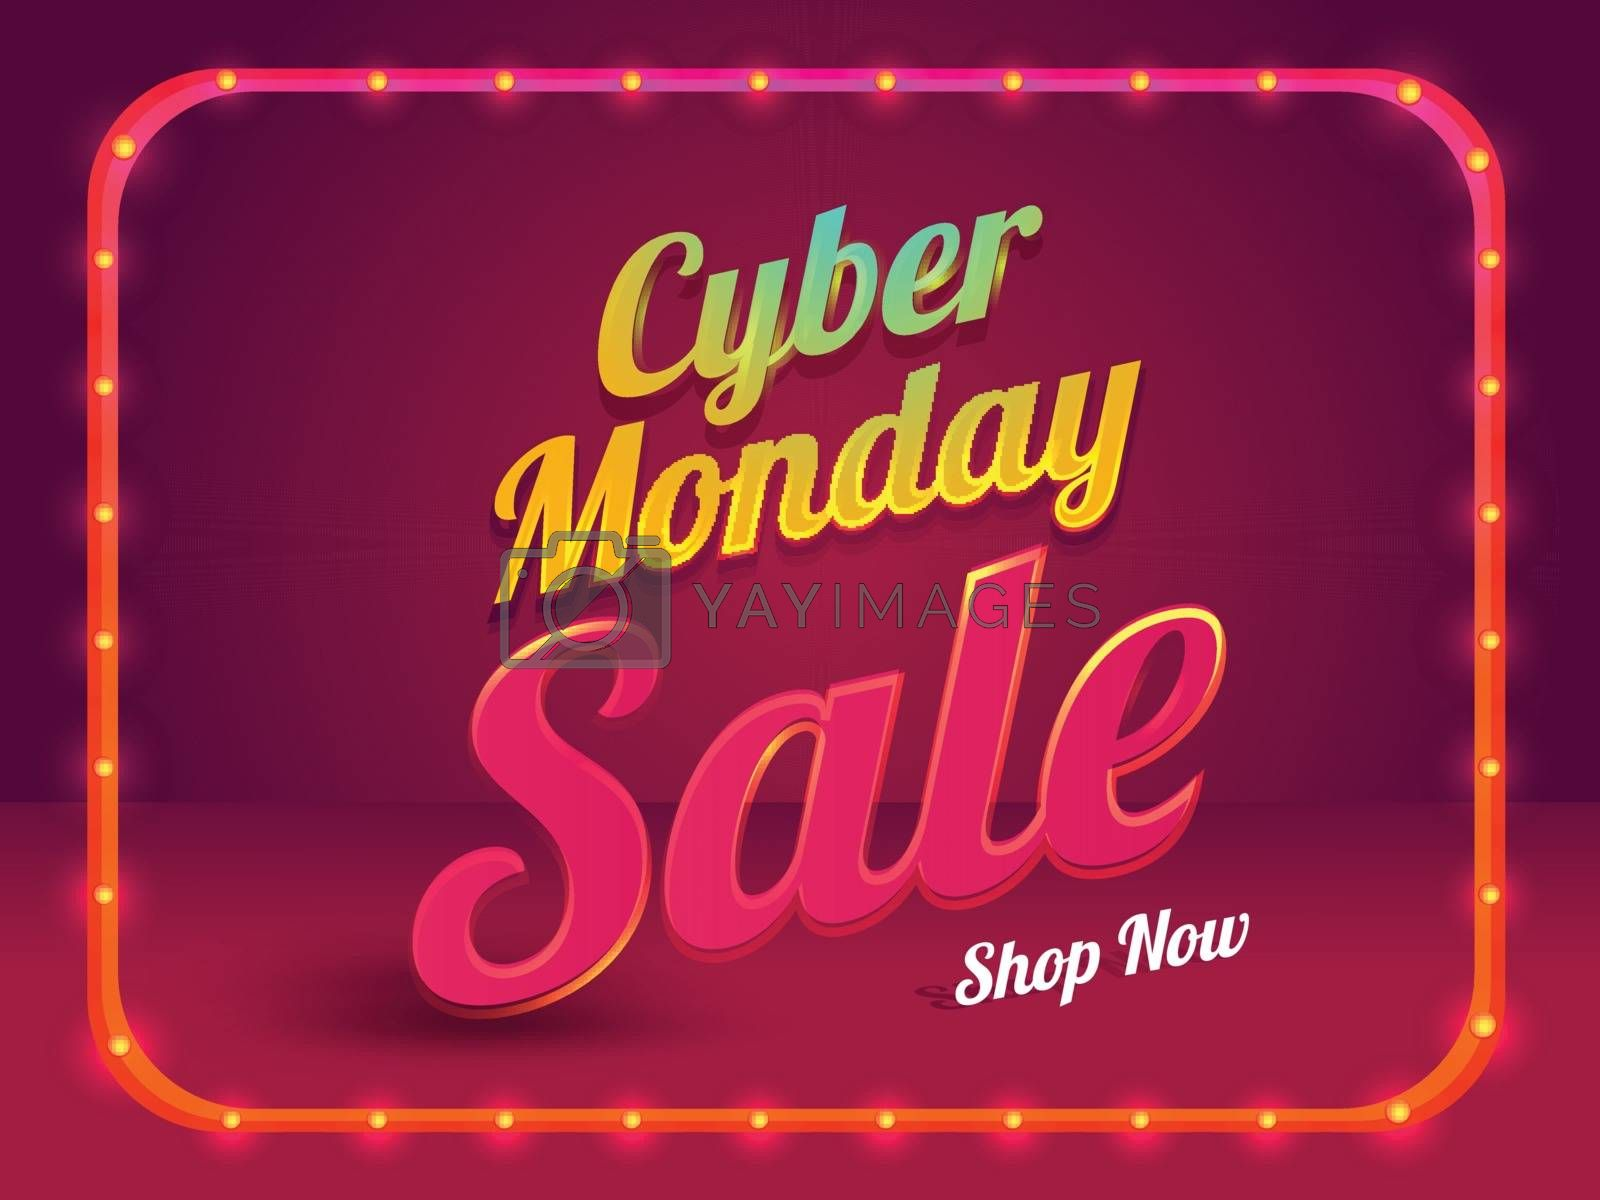 Cyber Monday sale poster or template design with lighting frame on glossy red background.